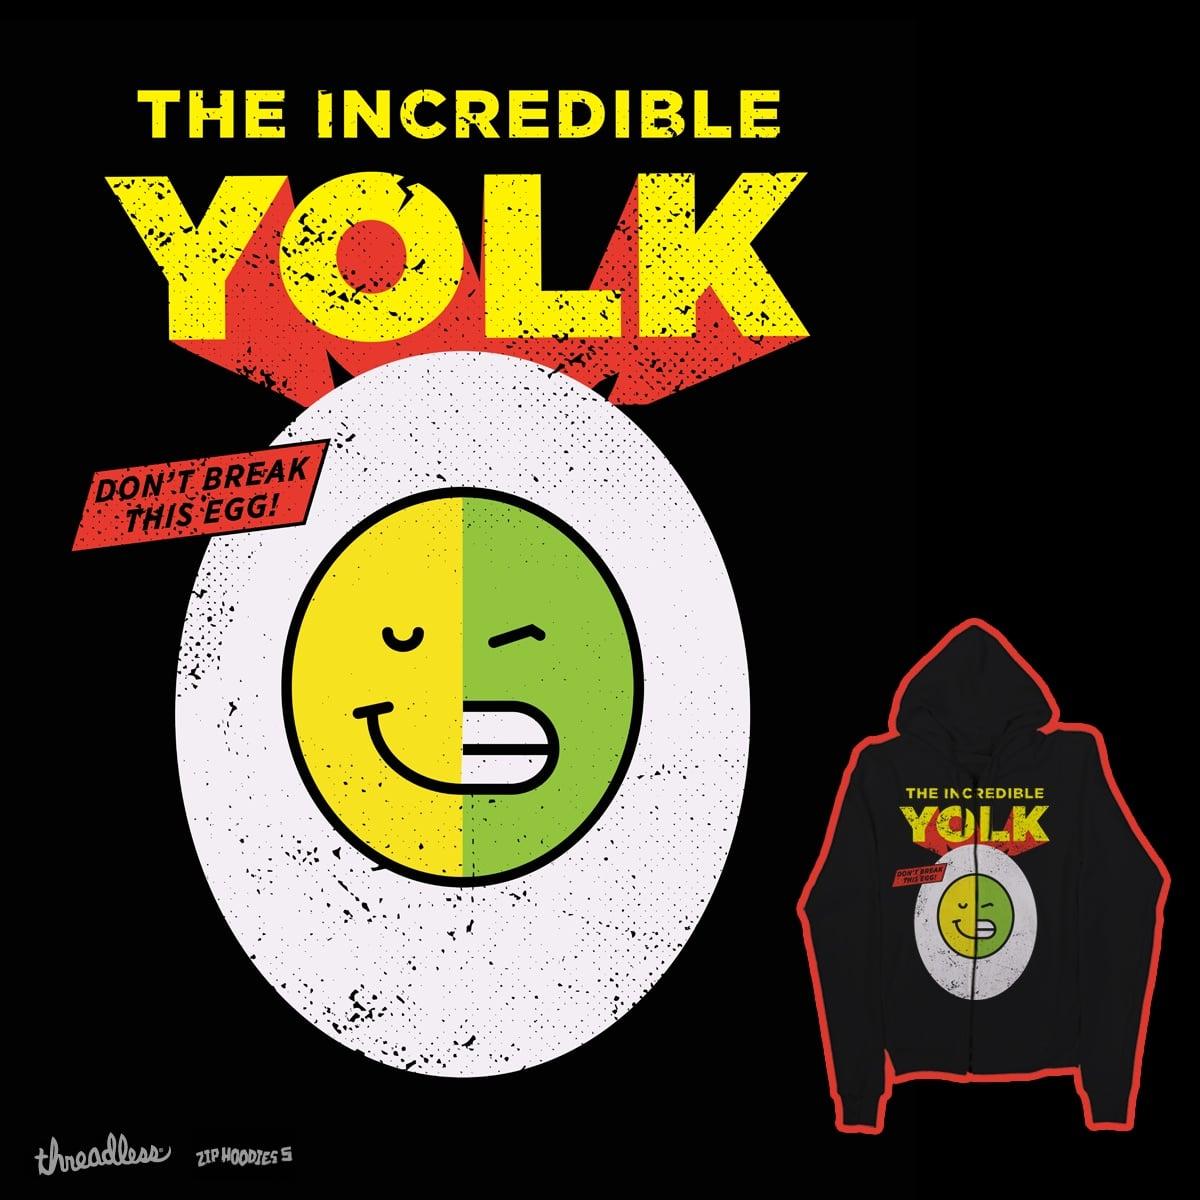 THE INCREDIBLE YOLK by campkatie on Threadless